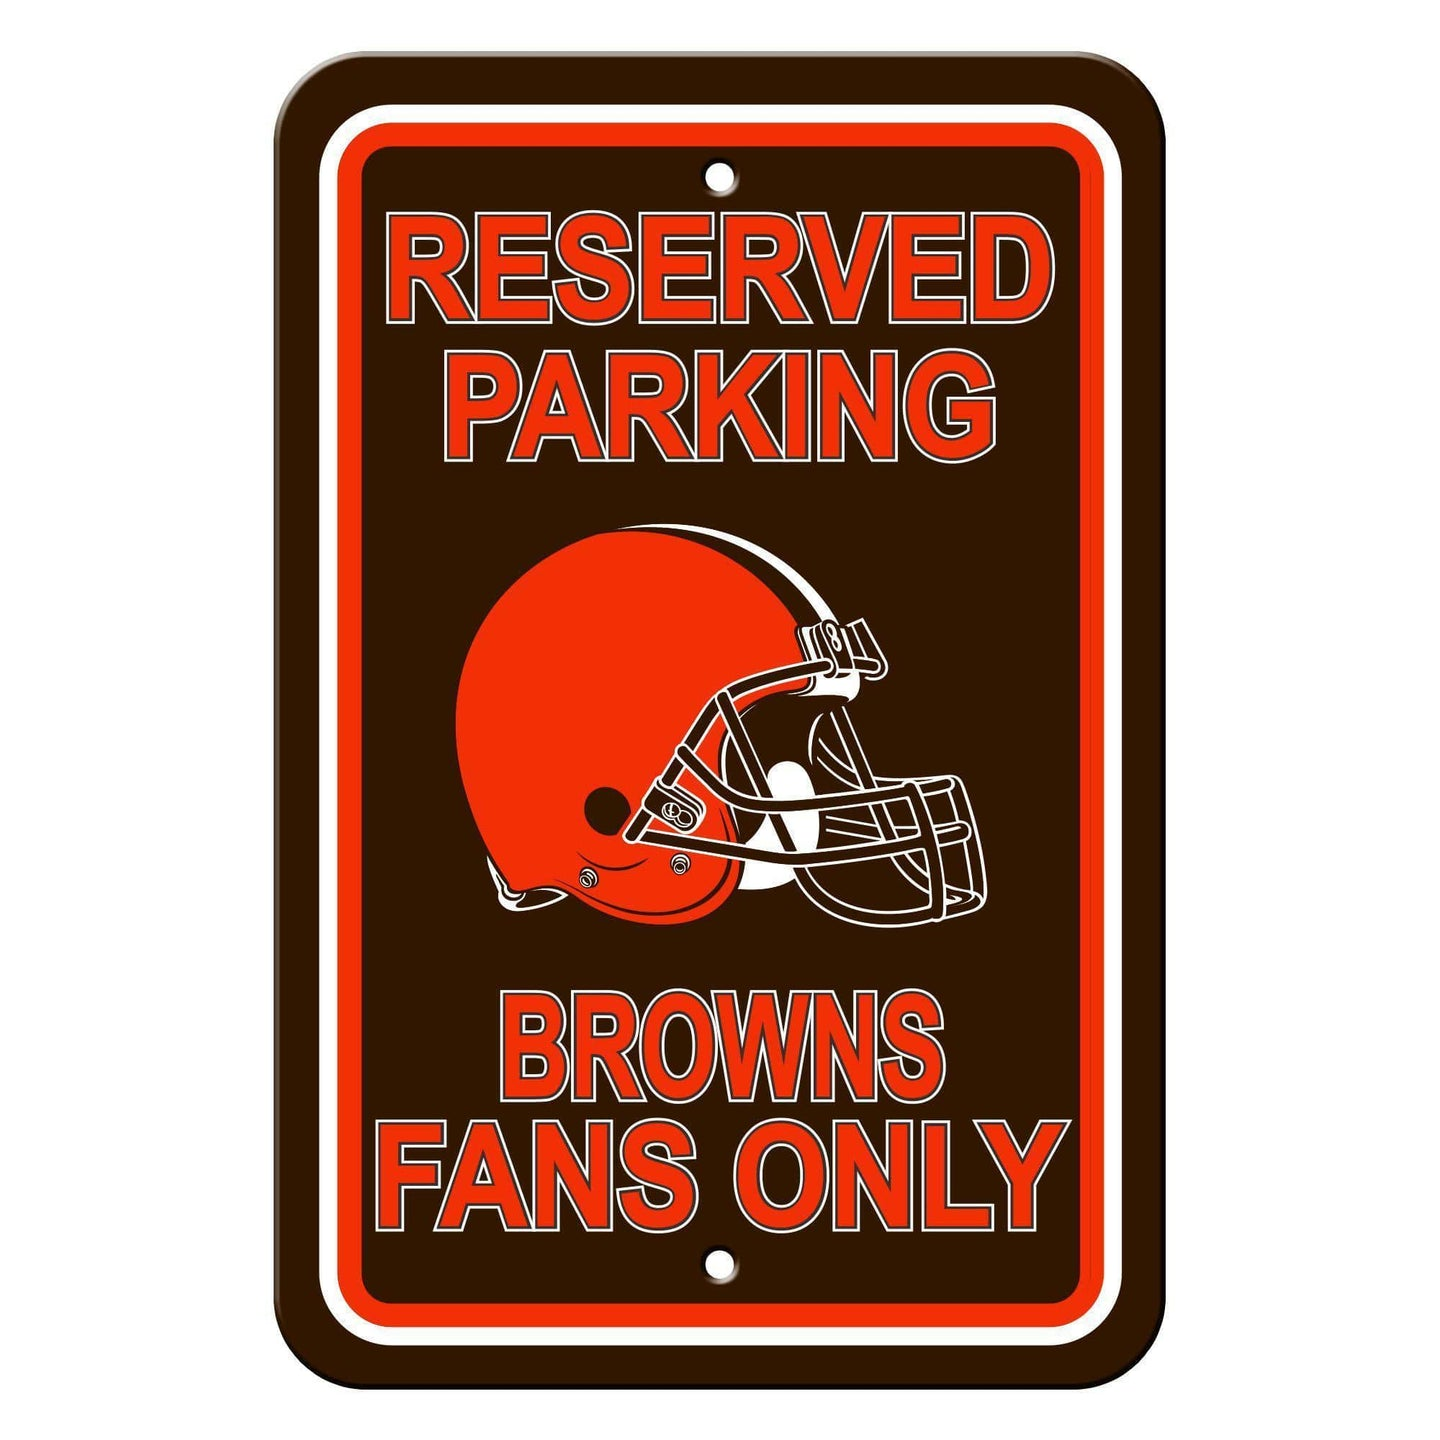 Cleveland Browns Parking Sign - Conrads College Gifts